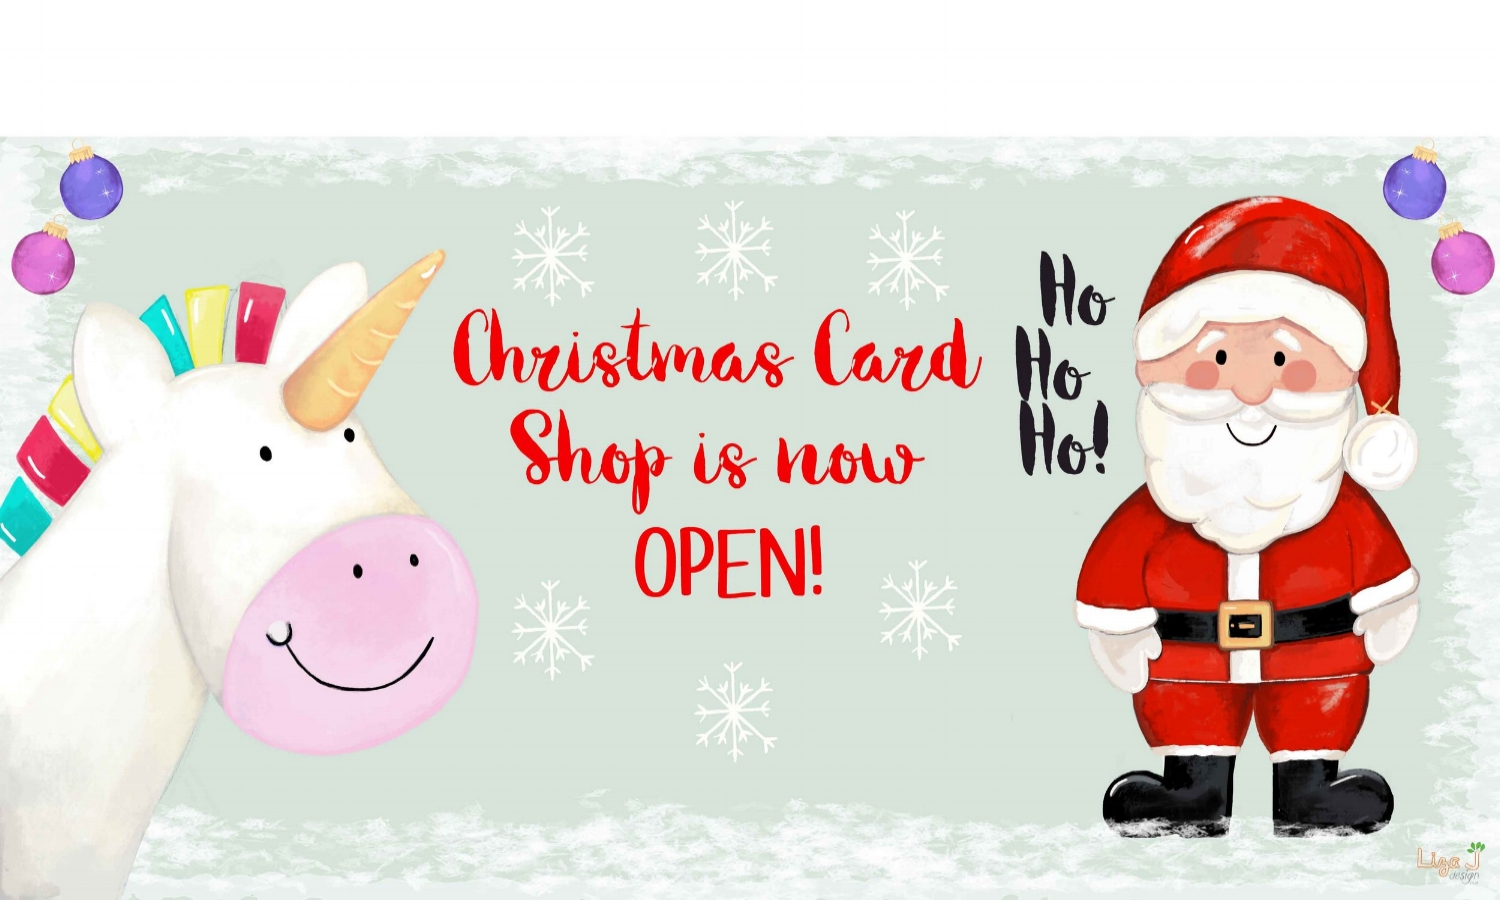 10% off Cards - To celebrate the launch of the new Christmas Card Shop enter code LJDXMAS in the 'Discount Code' box for 10% off all the available products expires Sunday 11th November 2018